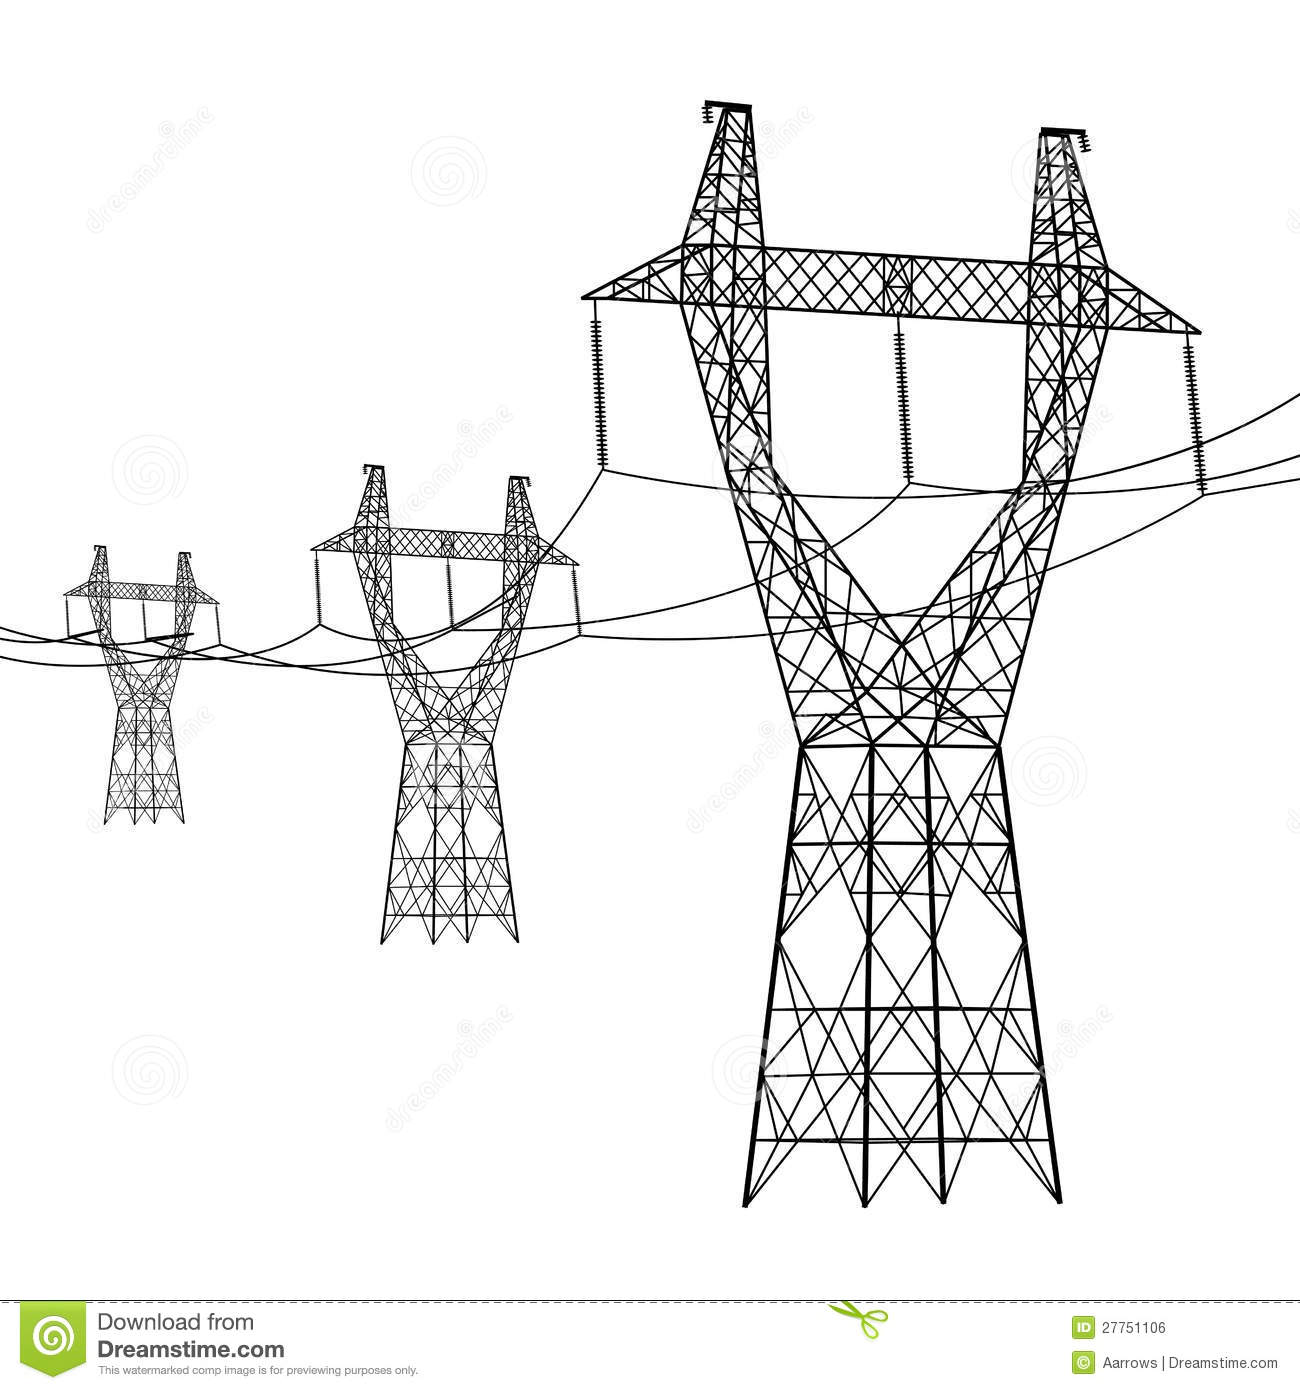 Silhouette Of High Voltage Power Lines Stock Vector